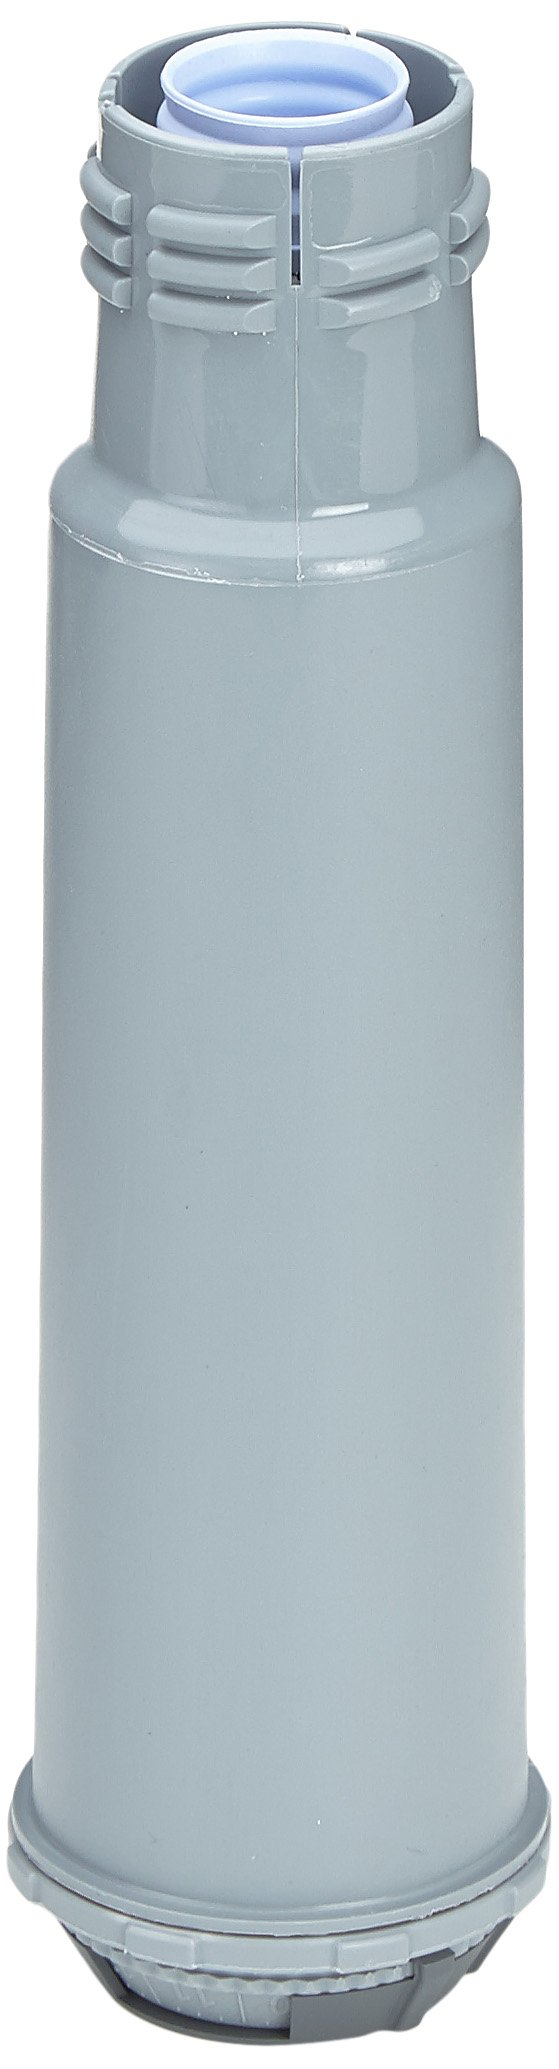 KRUPS F088 Water Filtration Cartridge for KRUPS Precise Tamp Espresso Machines and KRUPS Fully Automatic Machines for XP5220, XP5240 XP5280 XP5620 EA82 And EA9000 , White